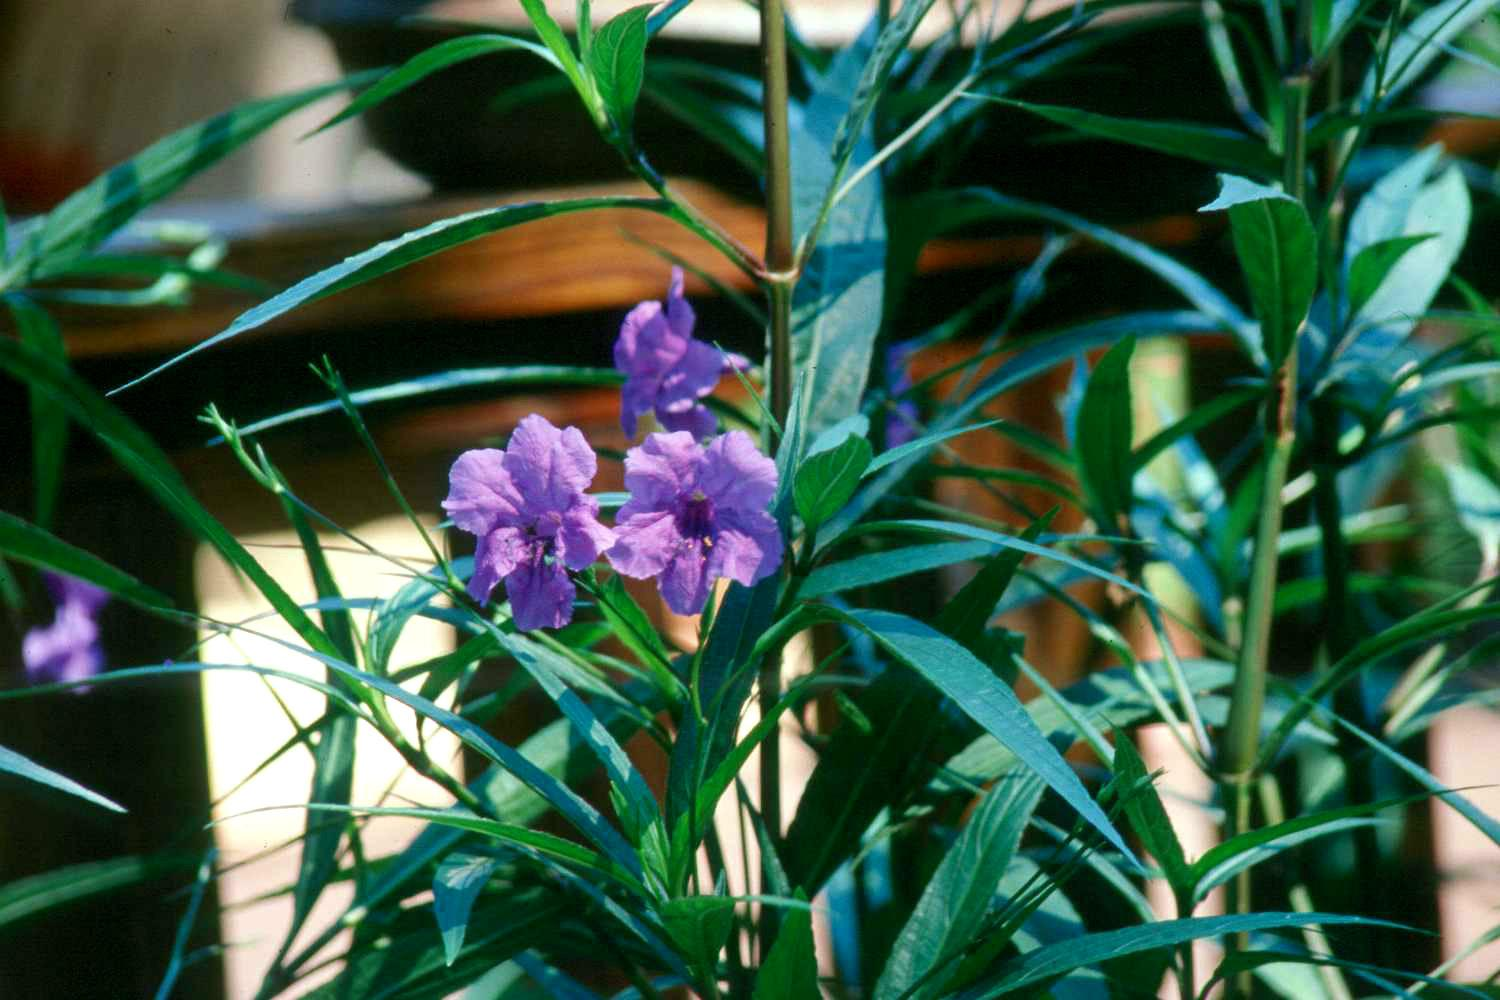 Ruellia has bluish-purple flowers that radiate color from the plant. The deep-green foliage with hints of burgundy is attractive and works well in combination plantings.